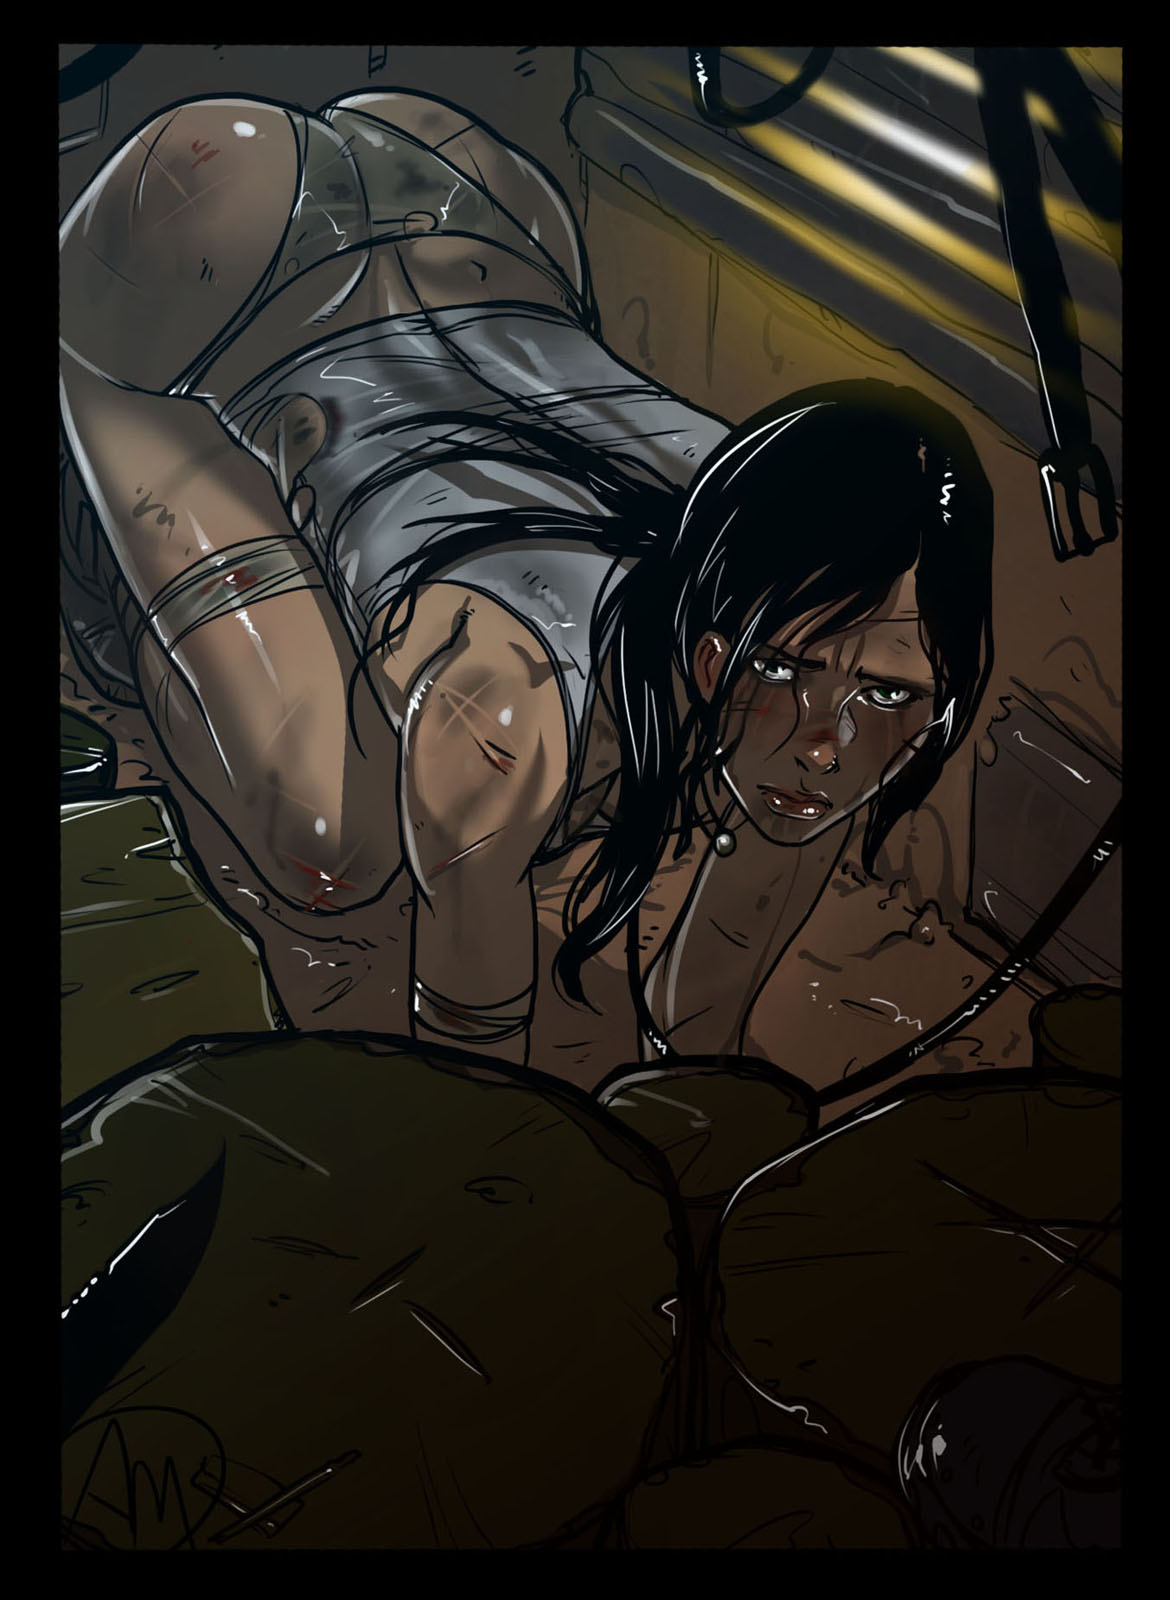 Lara croft hentai pic sexy photo